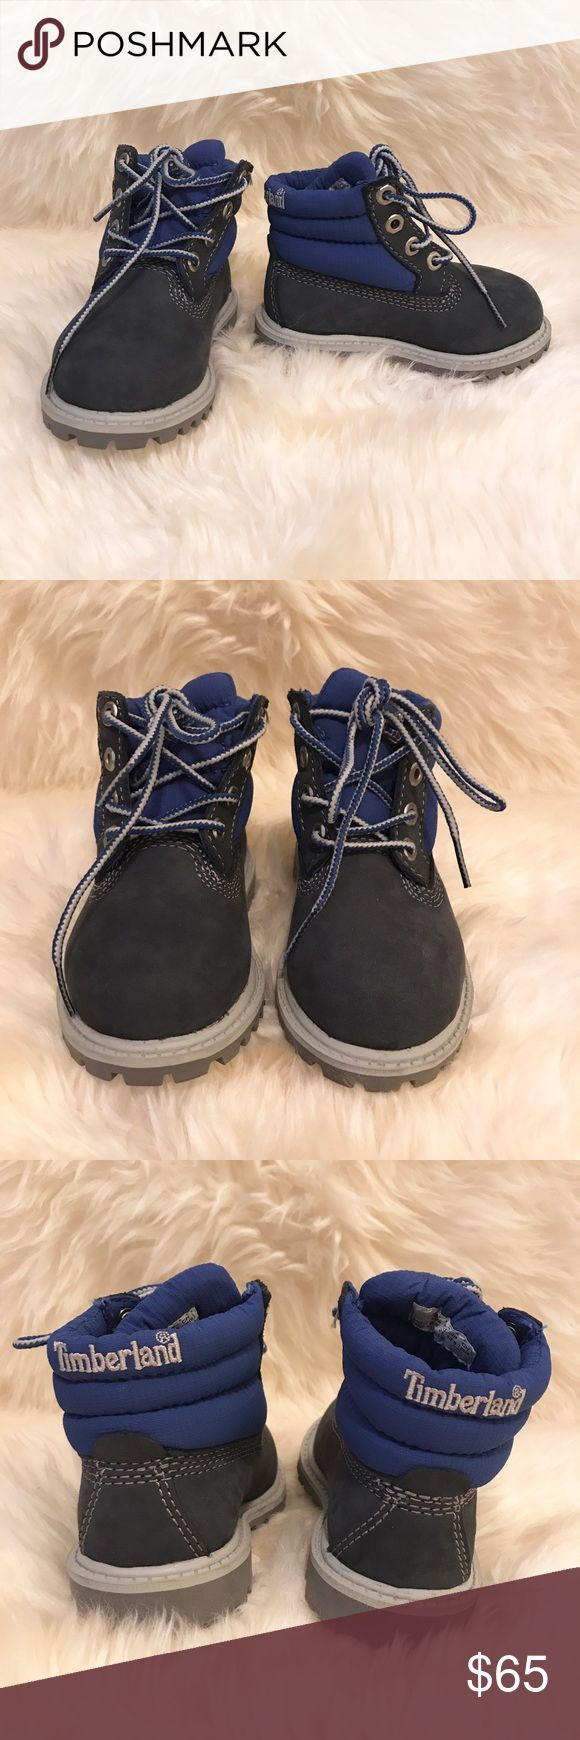 TIMBERLANDS toddler navy blue high top boots BRAND NEW WITHOUT BOX. Toddler navy blue high top boots. Never used. Timberland Shoes Boots